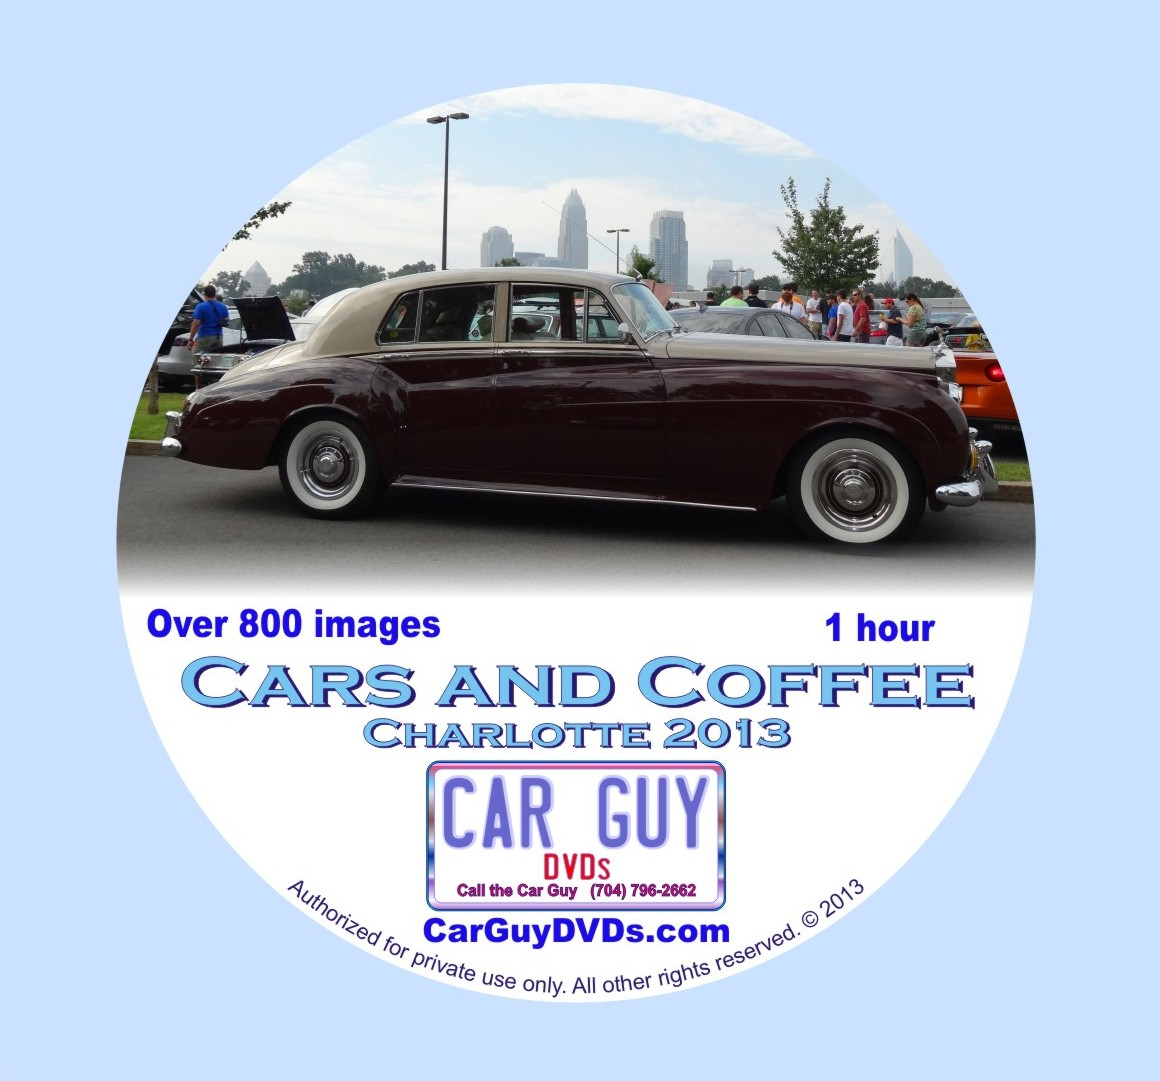 Cars and Coffee - Charlotte 2013